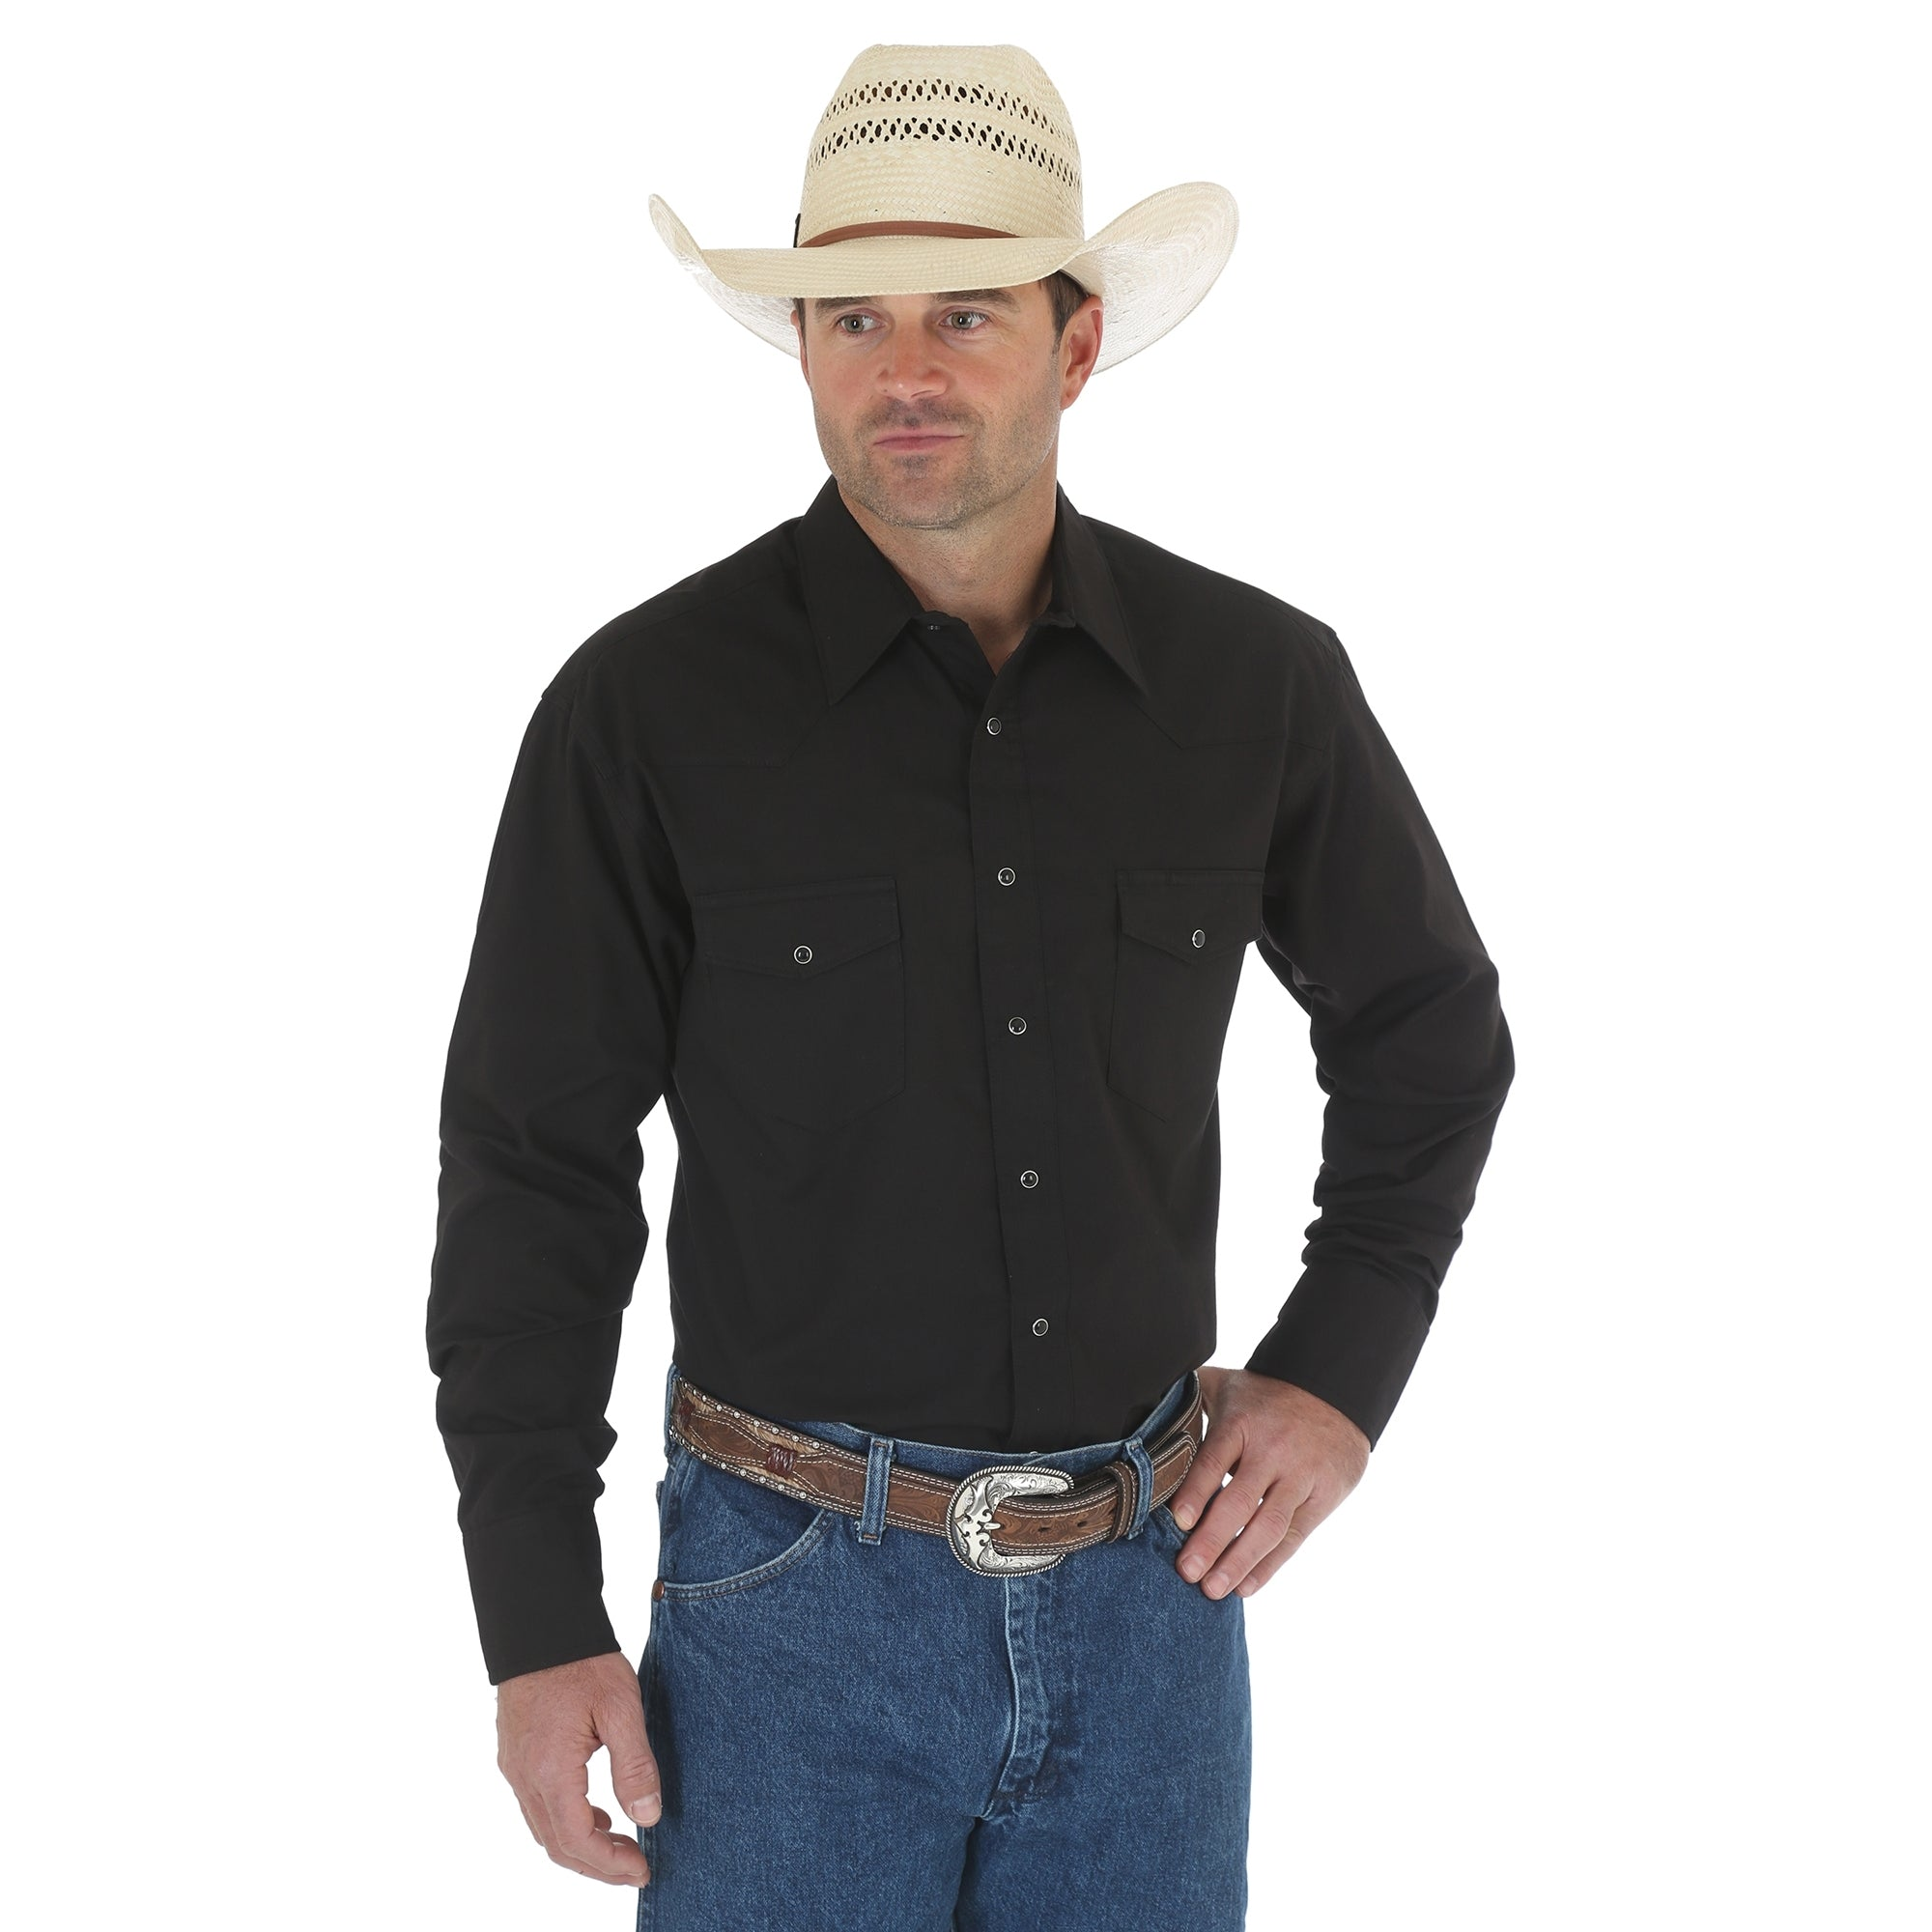 Wrangler Men's Sport Western Snap Shirt - Black